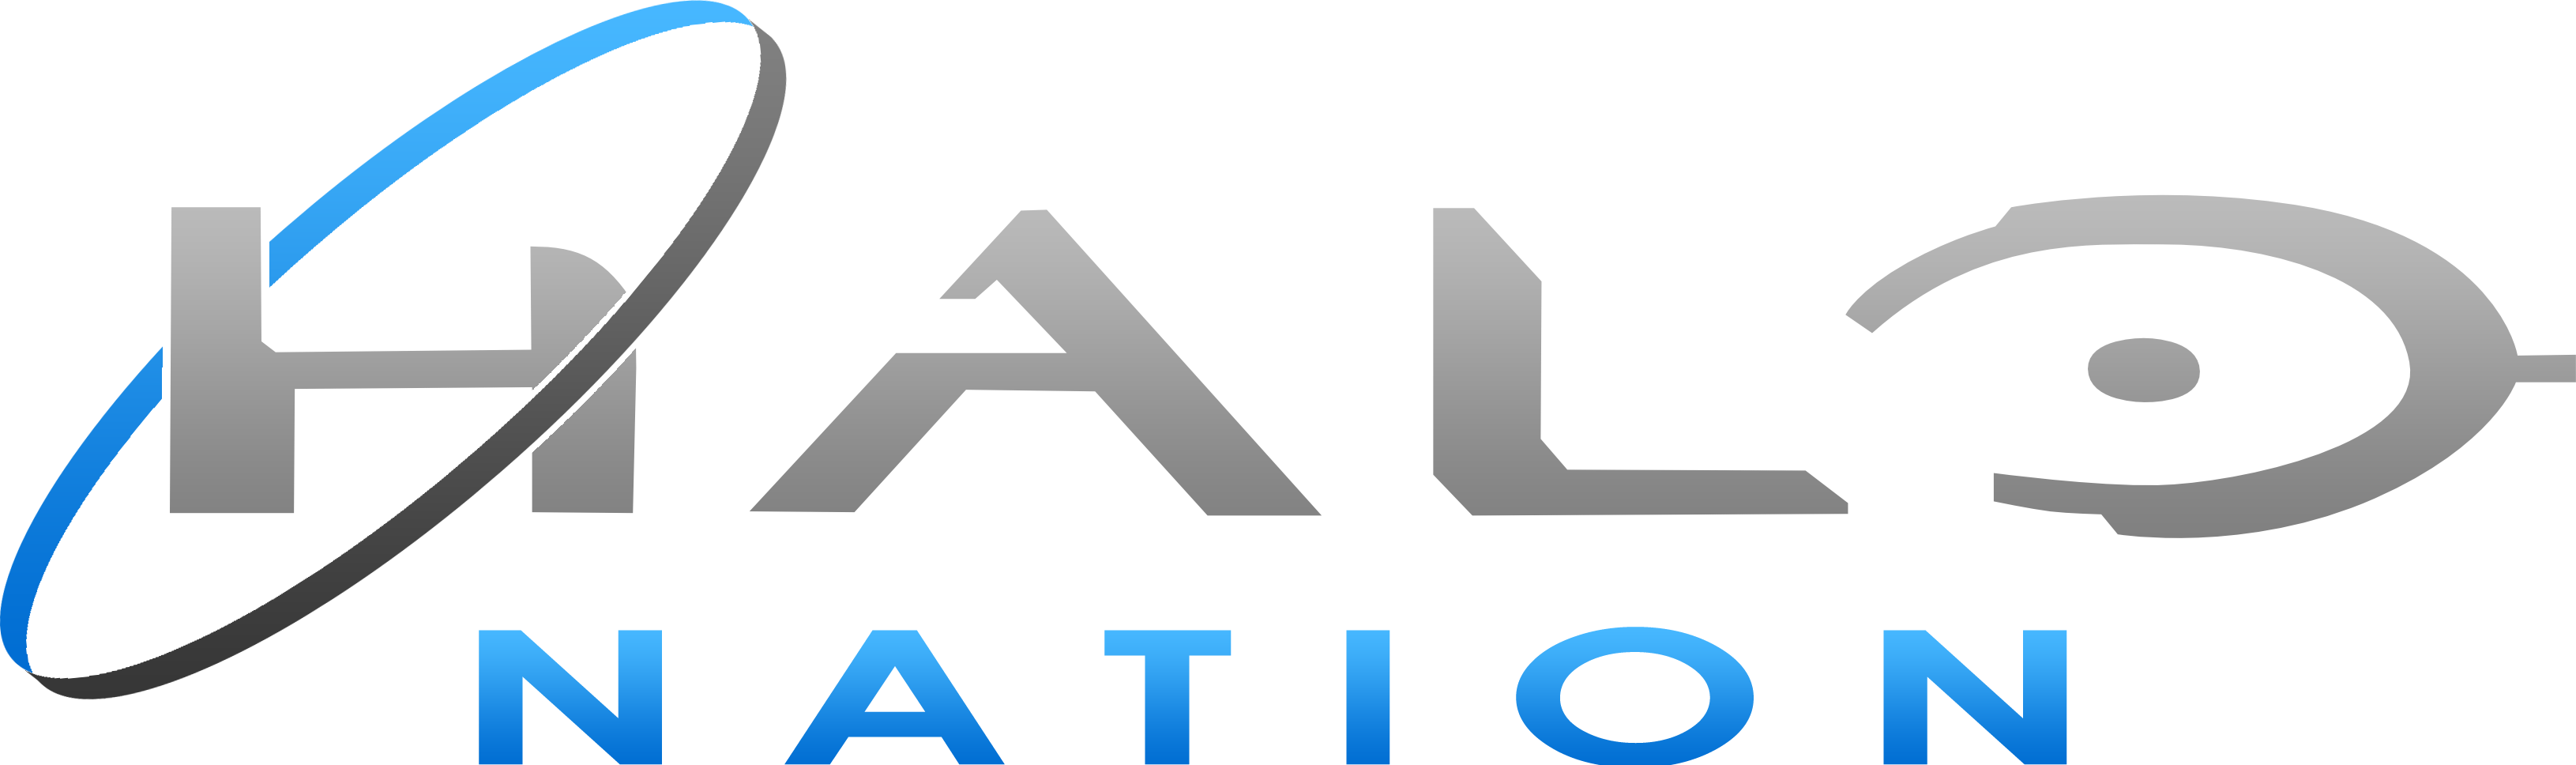 Spartan Ii Program Halo Nation Fandom Powered By Wikia Electrical Wiring Books Group Picture Image Tag Apologizes For The Video Displayed At Top Of This Page Unlike Our Articles Was Not Created Community